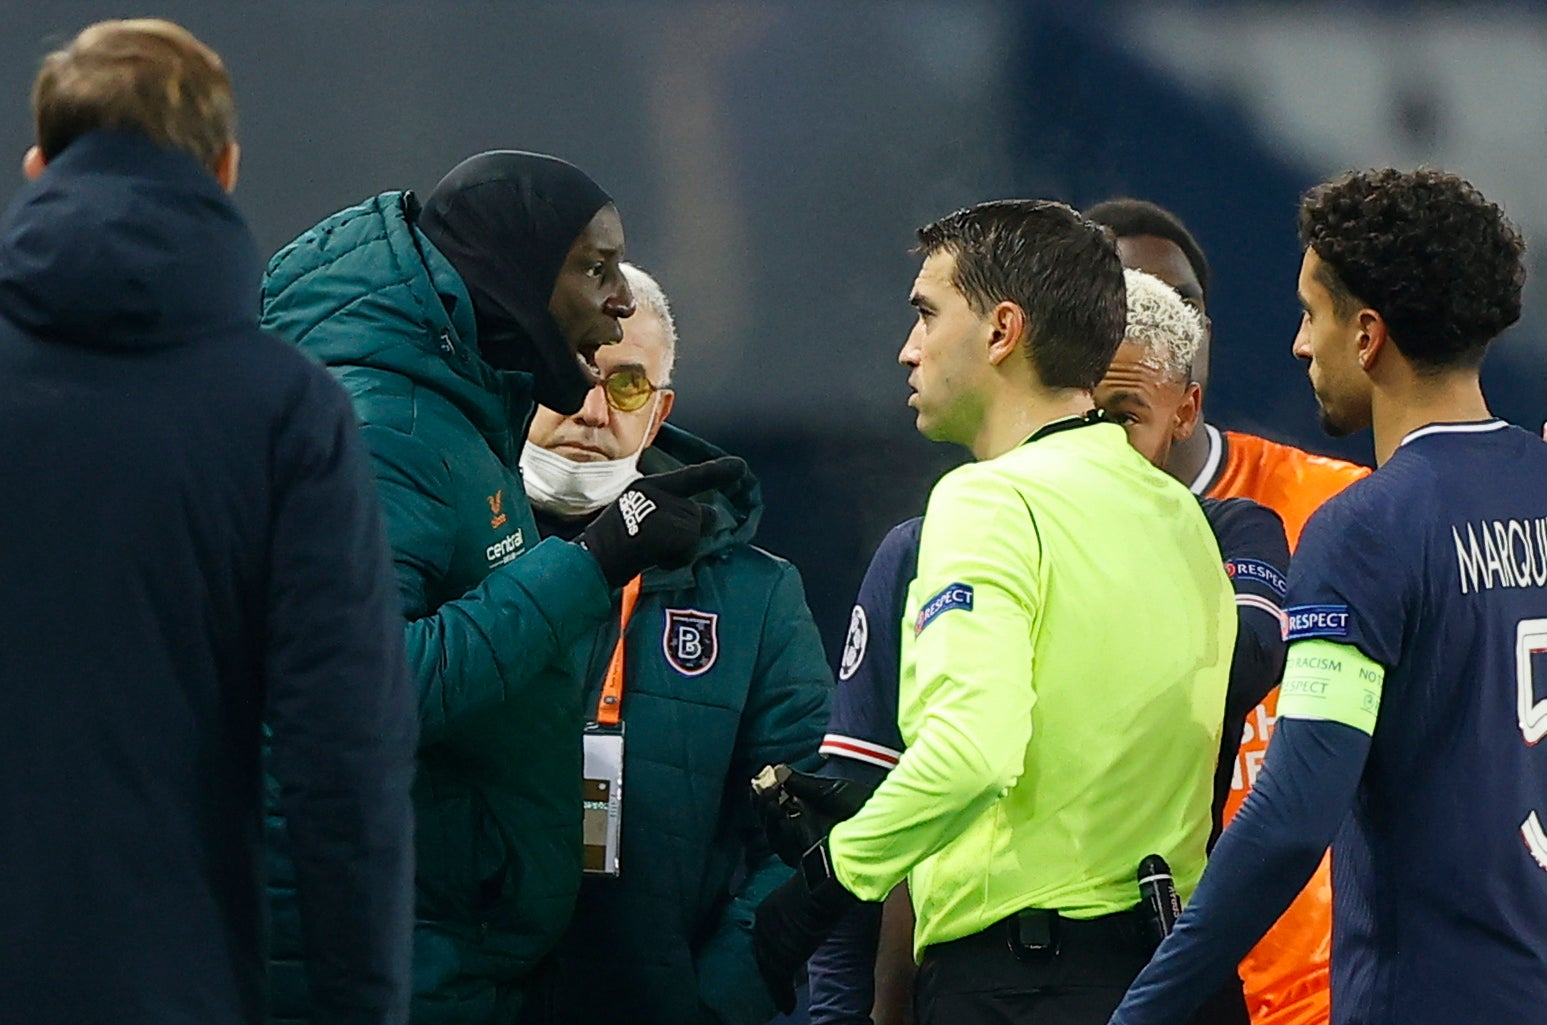 PSG vs Istanbul Basaksehir: Players walk off after alleged racism by match  official in Champions League | The Independent